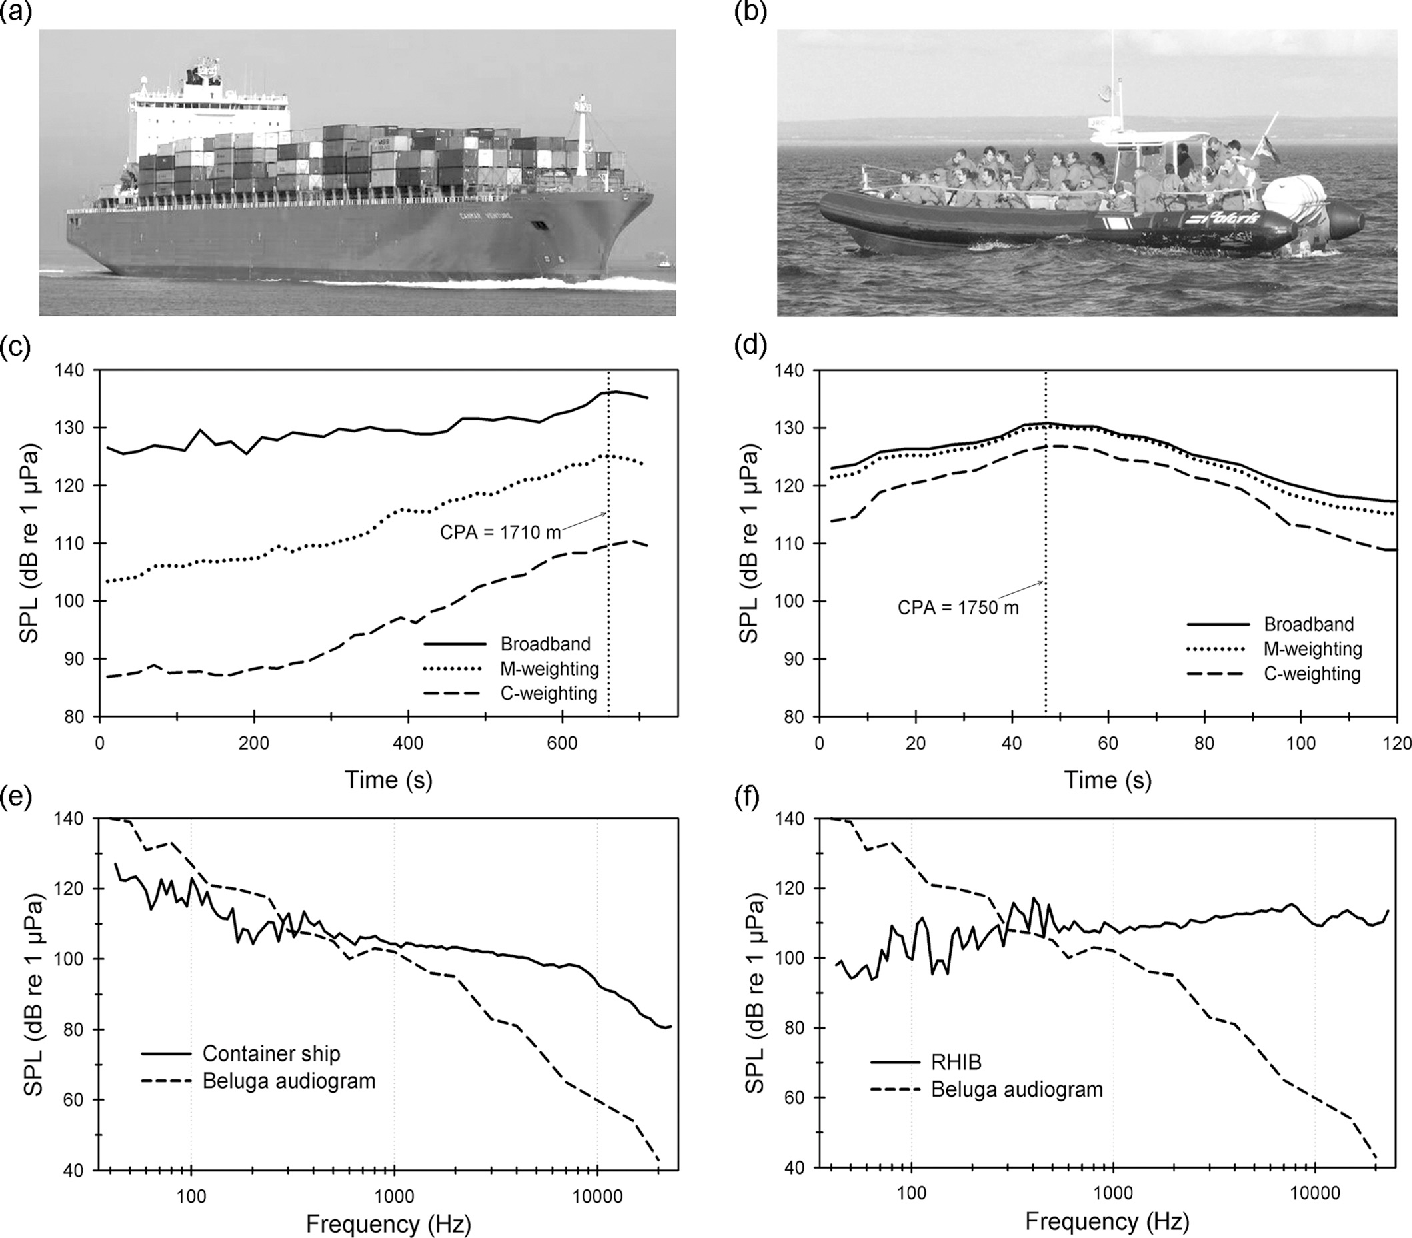 FIG. 9. Vessel noise signature of approaching vessels: (a) container ship, Canmar Venture and (b) large RHIB; (c),(d) the broadband, M-weighted and C-weighted RMS SPL (dB re 1 lPa) over time for each approaching vessel (CPA¼ closest point of approach); and (e),(f) 1/12 octave broadband sound levels (solid line) of approaching vessels at CPA relative to a beluga audiogram (dashed line) illustrating approximate audible (above) and inaudible (below) frequencies.